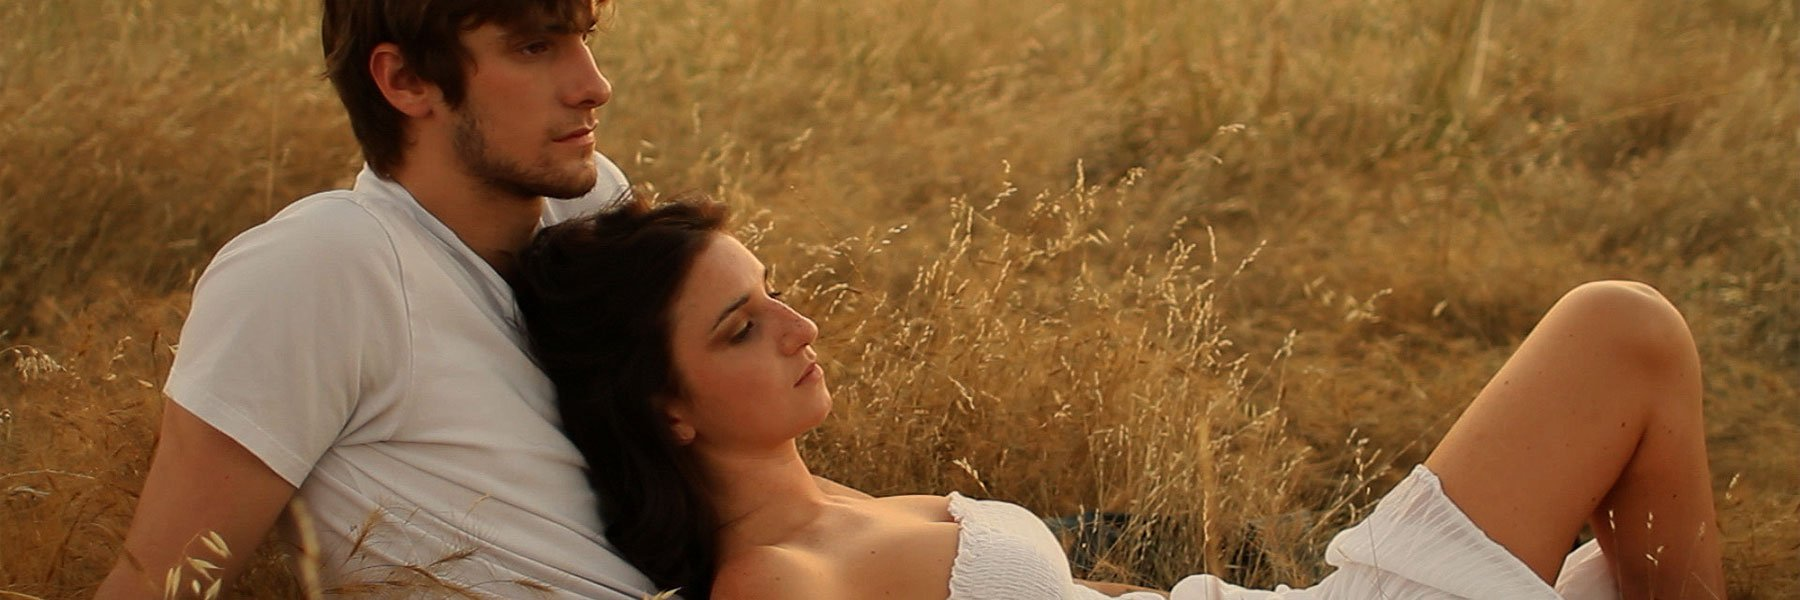 Promotional-Video-Thumbnail-for-Clinique-Happy_Couple